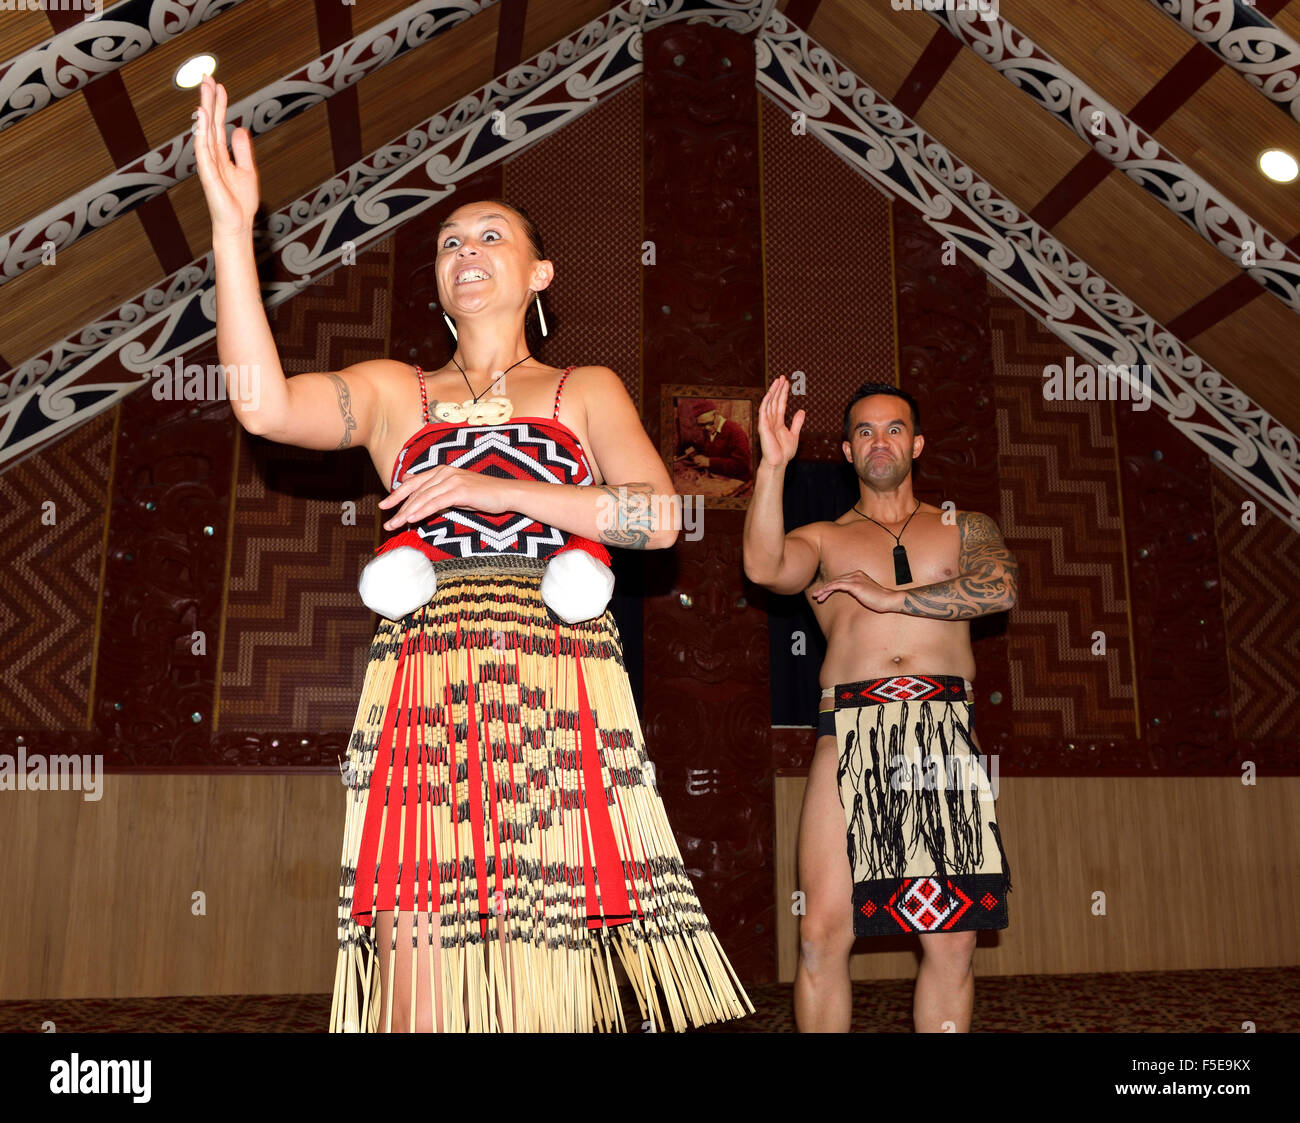 Tourist attraction of Maori song and dancing inside the meeting house (Te aronui a rua )Te Puia Maori Village Rotorua, - Stock Image